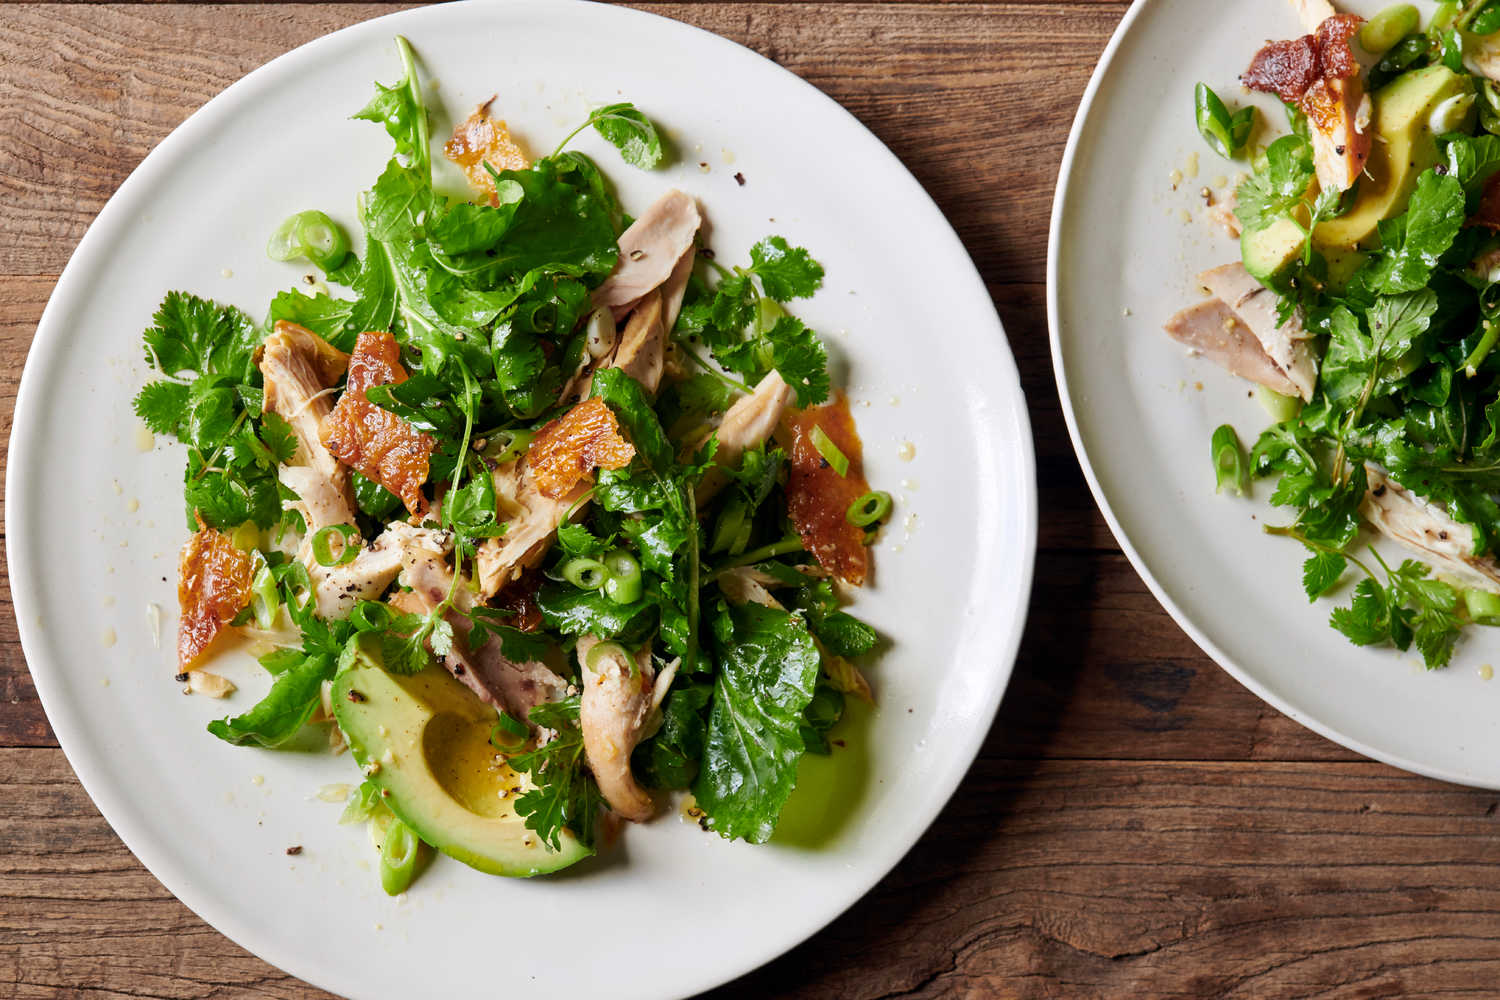 Rotisserie Chicken Salad With Greens And Herbs Recipe